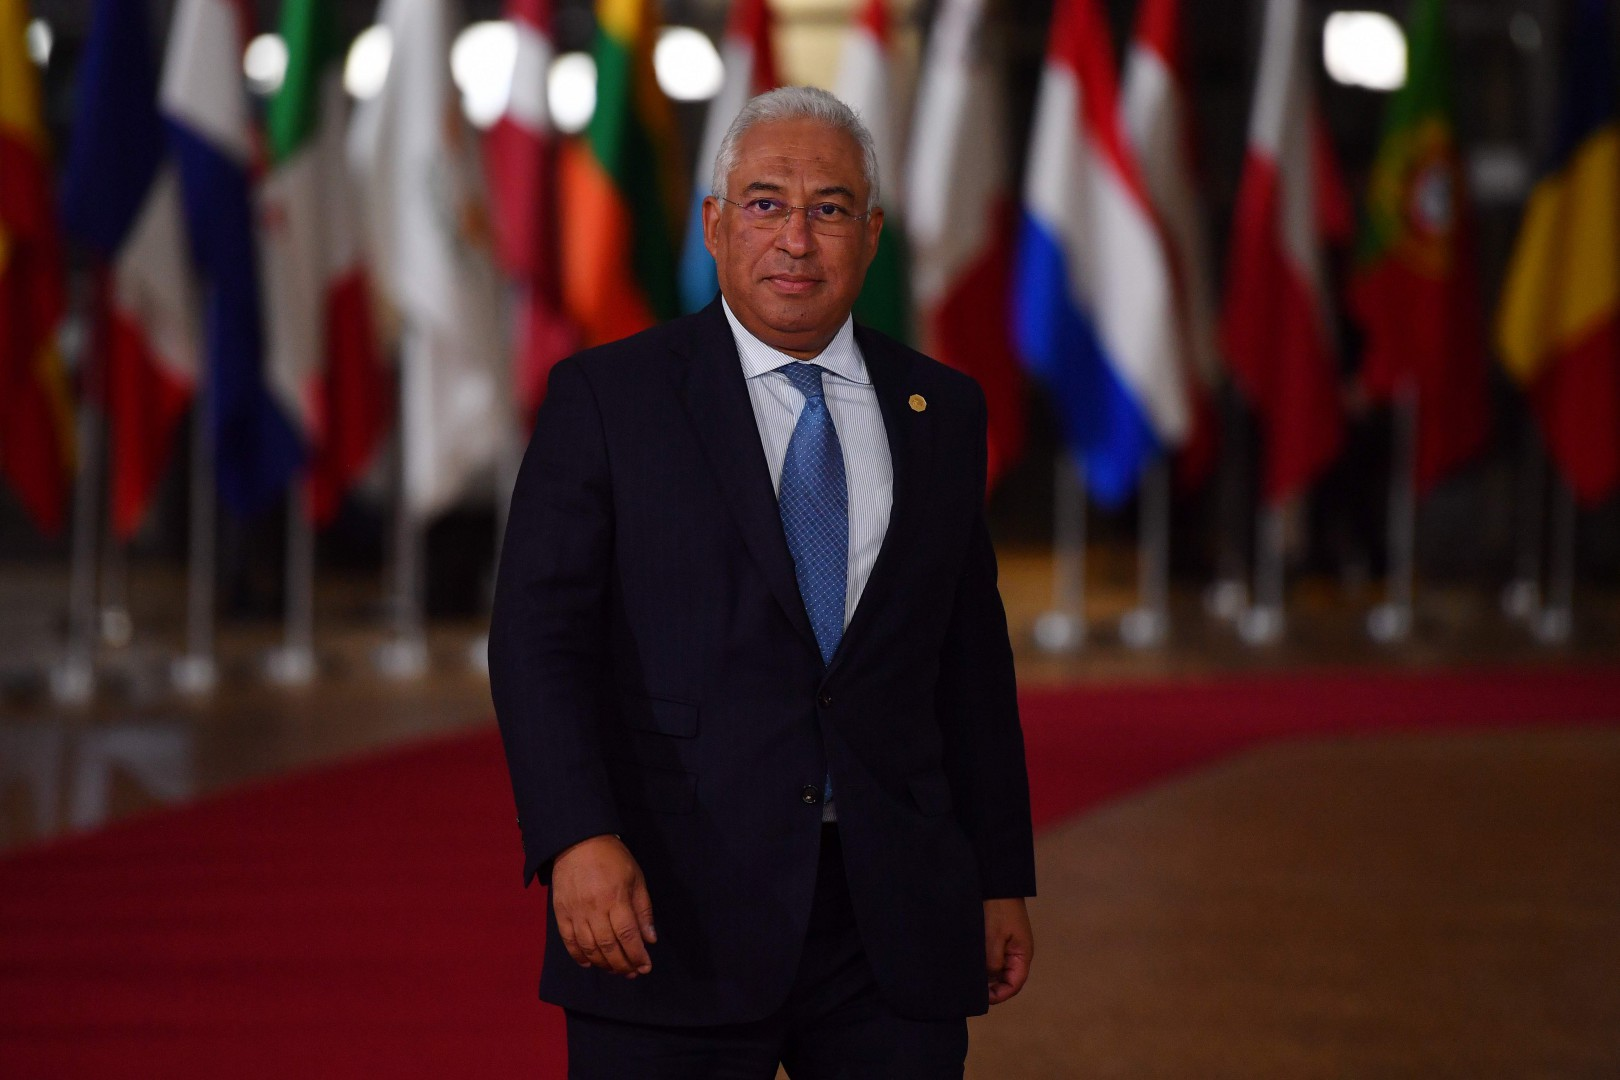 Portugal's Prime Minister Antonio Costa arrives at the European Council in Brussels on October 17, 2018. - British Prime Minister Theresa May is due to address a summit of European Union leaders in which Brexit negotiations are expected to be top of the agenda. (Photo by Ben STANSALL / AFP)